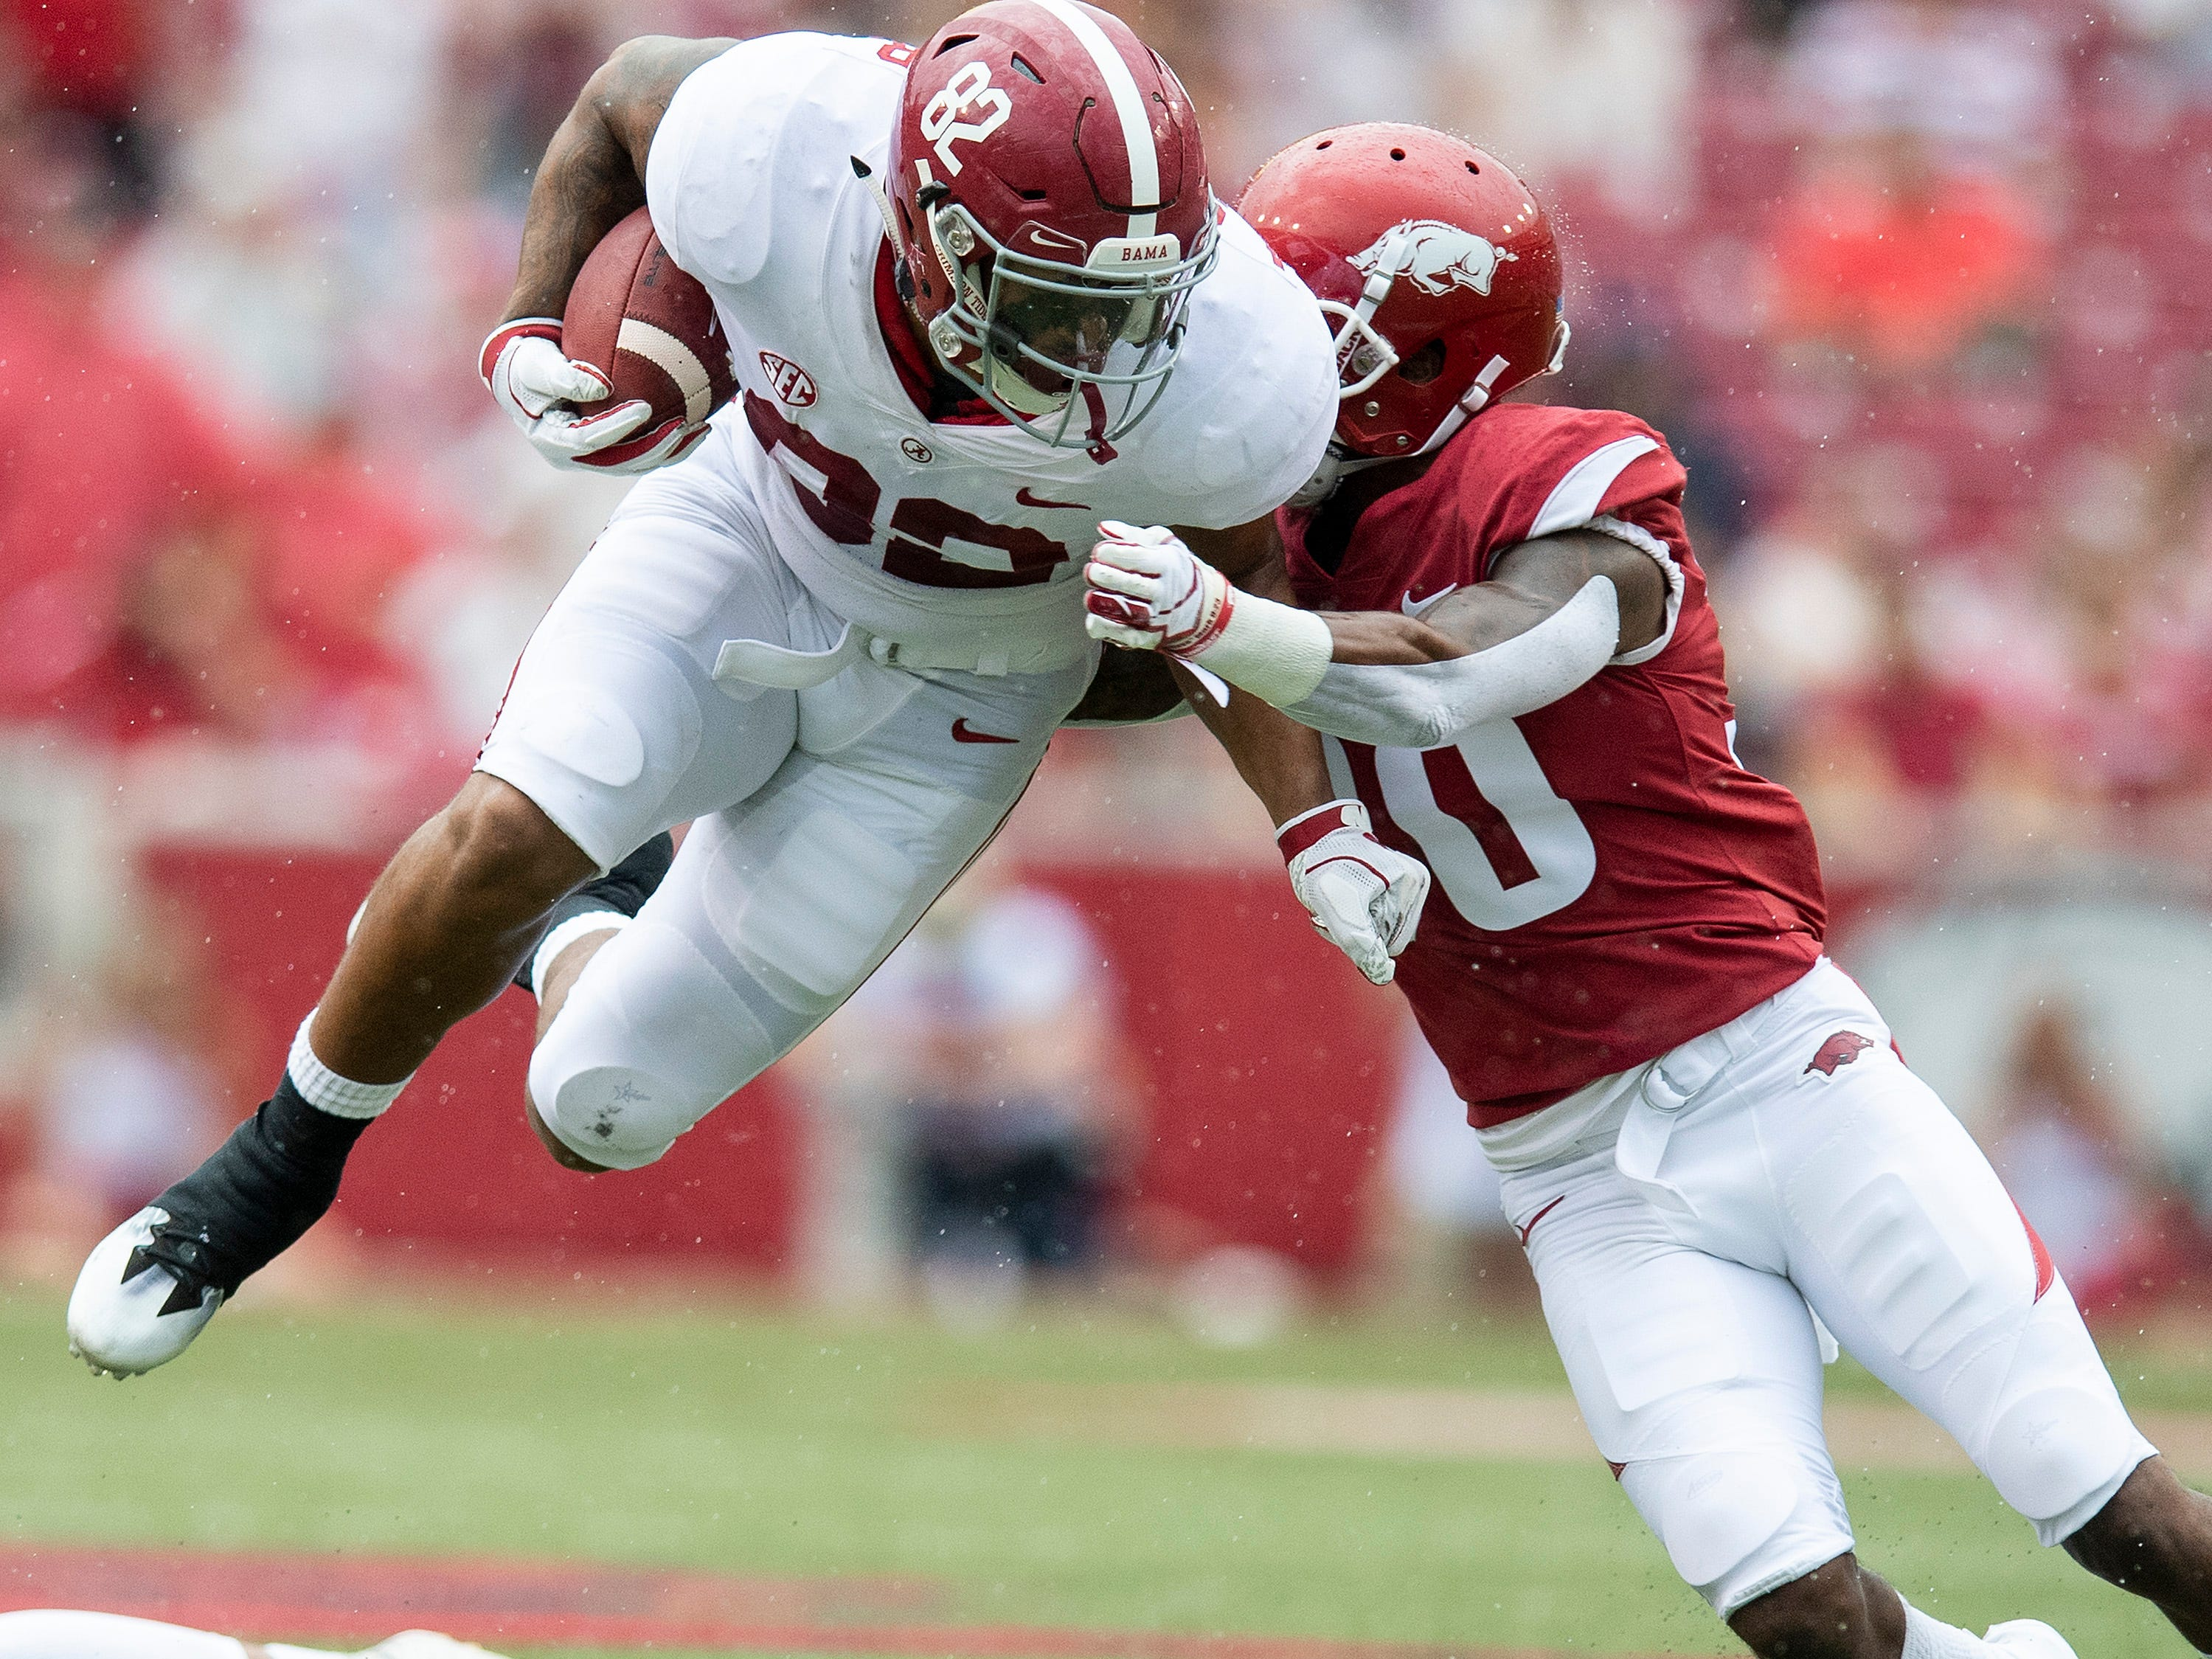 Alabama tight end Irv Smith Jr. (82) collides with Arkansas defensive back Kevin Richardson, II, (30) during first half action in Fayetteville, Ark., on Saturday October 6, 2018.